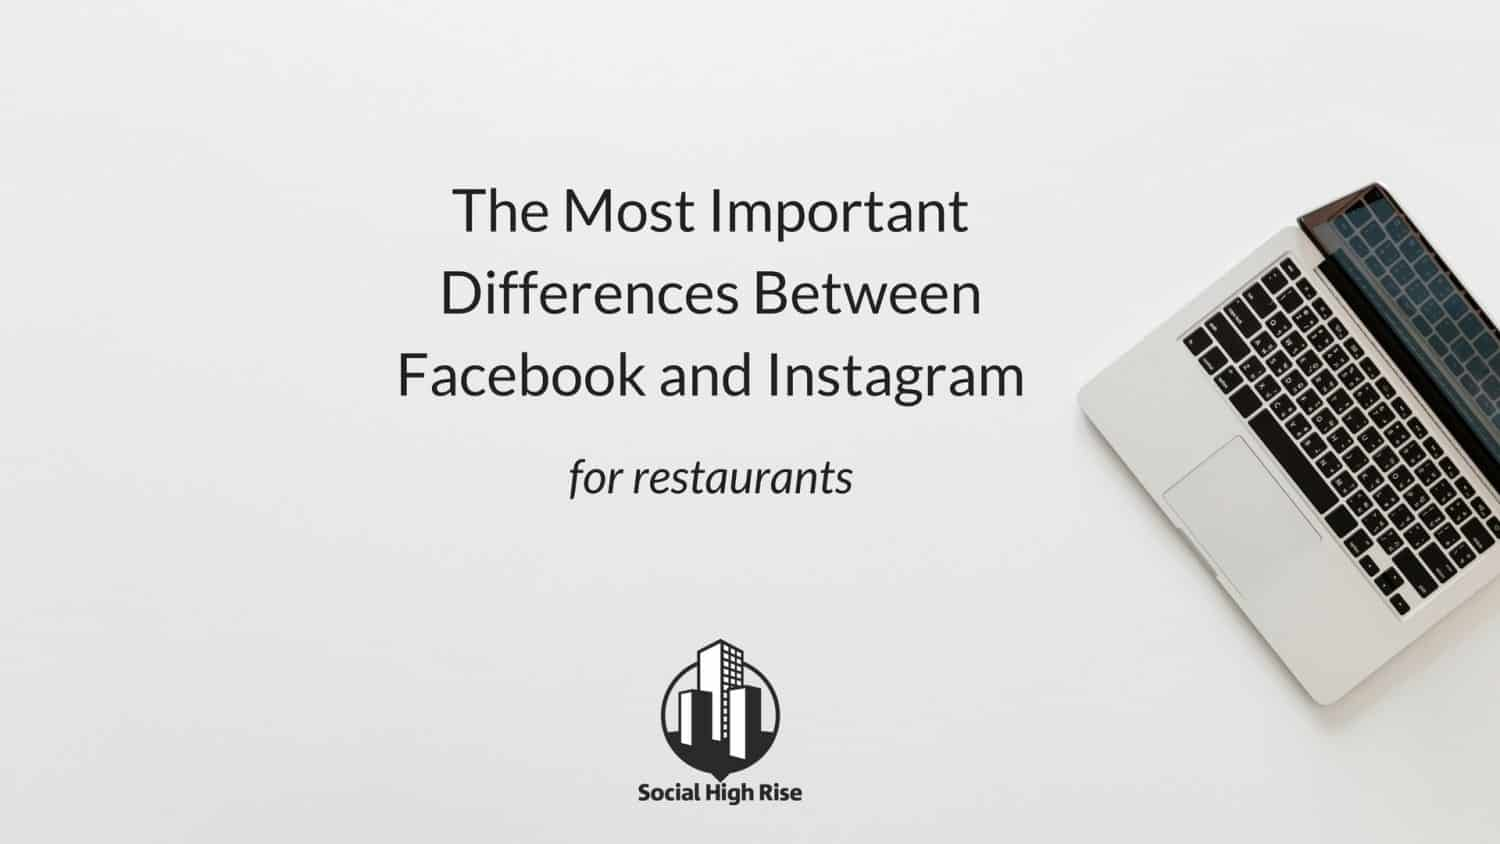 Differences between Facebook and Instagram